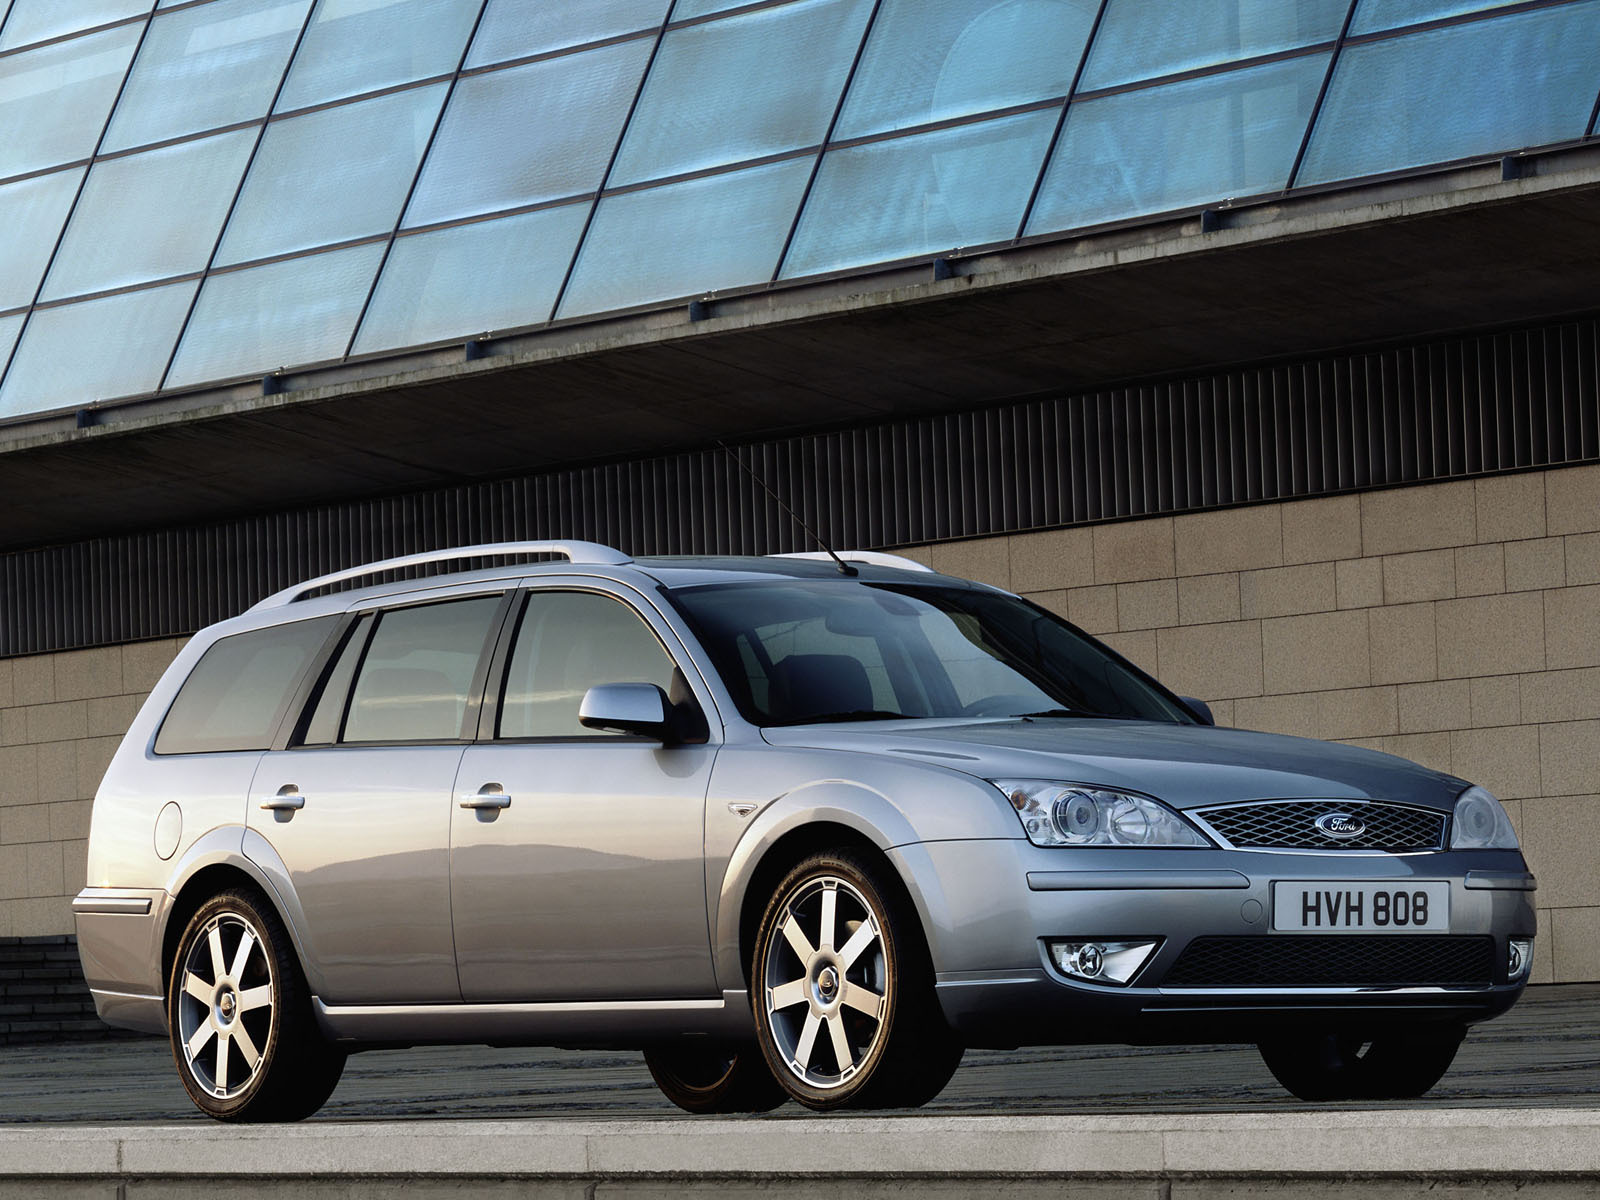 Ford images 2005 Ford Mondeo Estate HD wallpaper and background 1600x1200